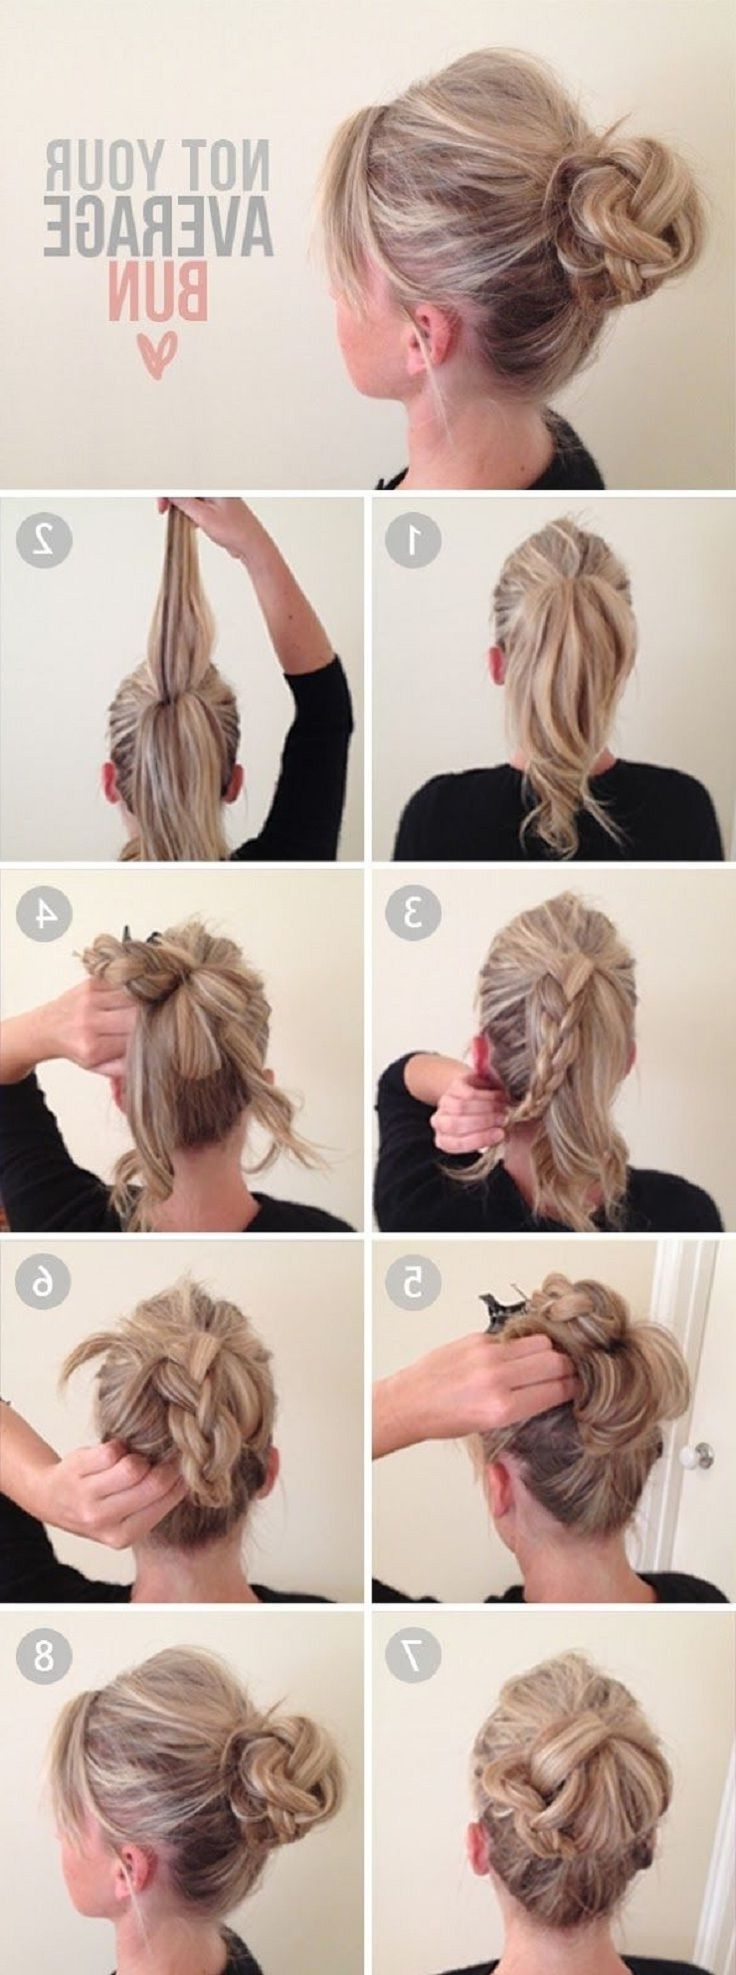 14 Amazing Double Braid Bun Hairstyles – Pretty Designs Intended For Widely Used Messy Double Braid Hairstyles (View 1 of 15)